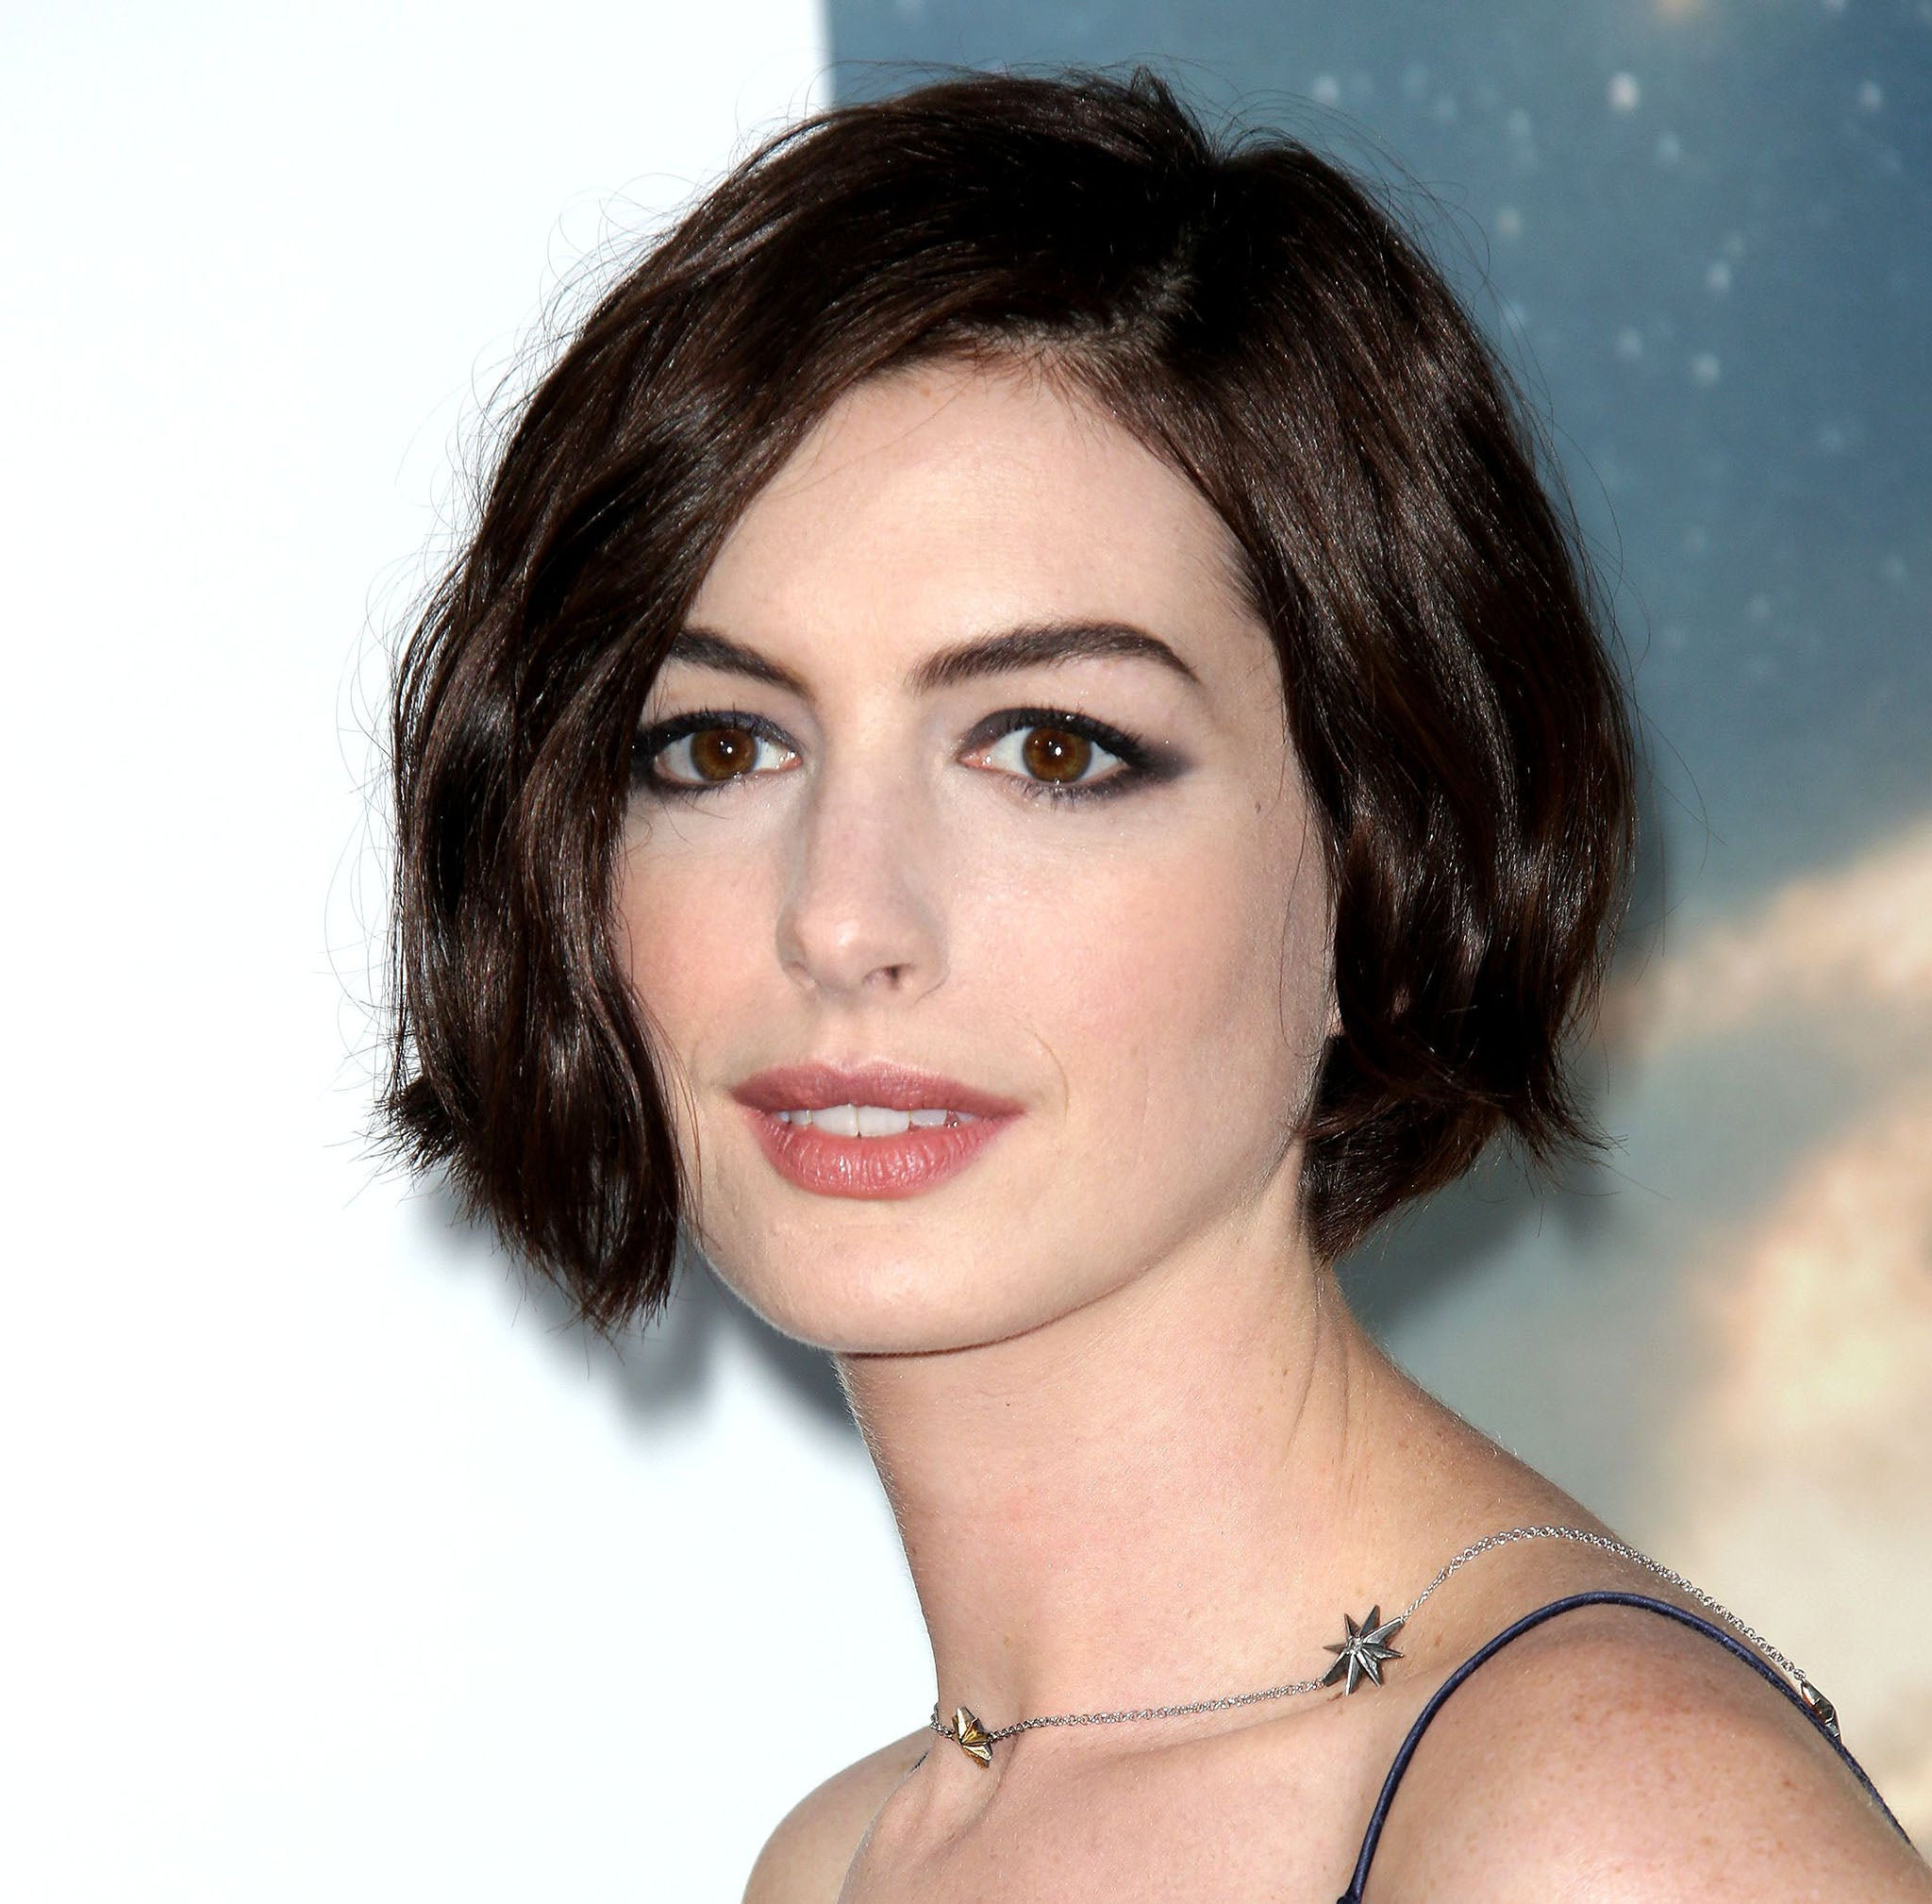 Anne Hathaway Young Pictures: Anne Hathaway Thought She'd 'die Of Hypothermia' Filming